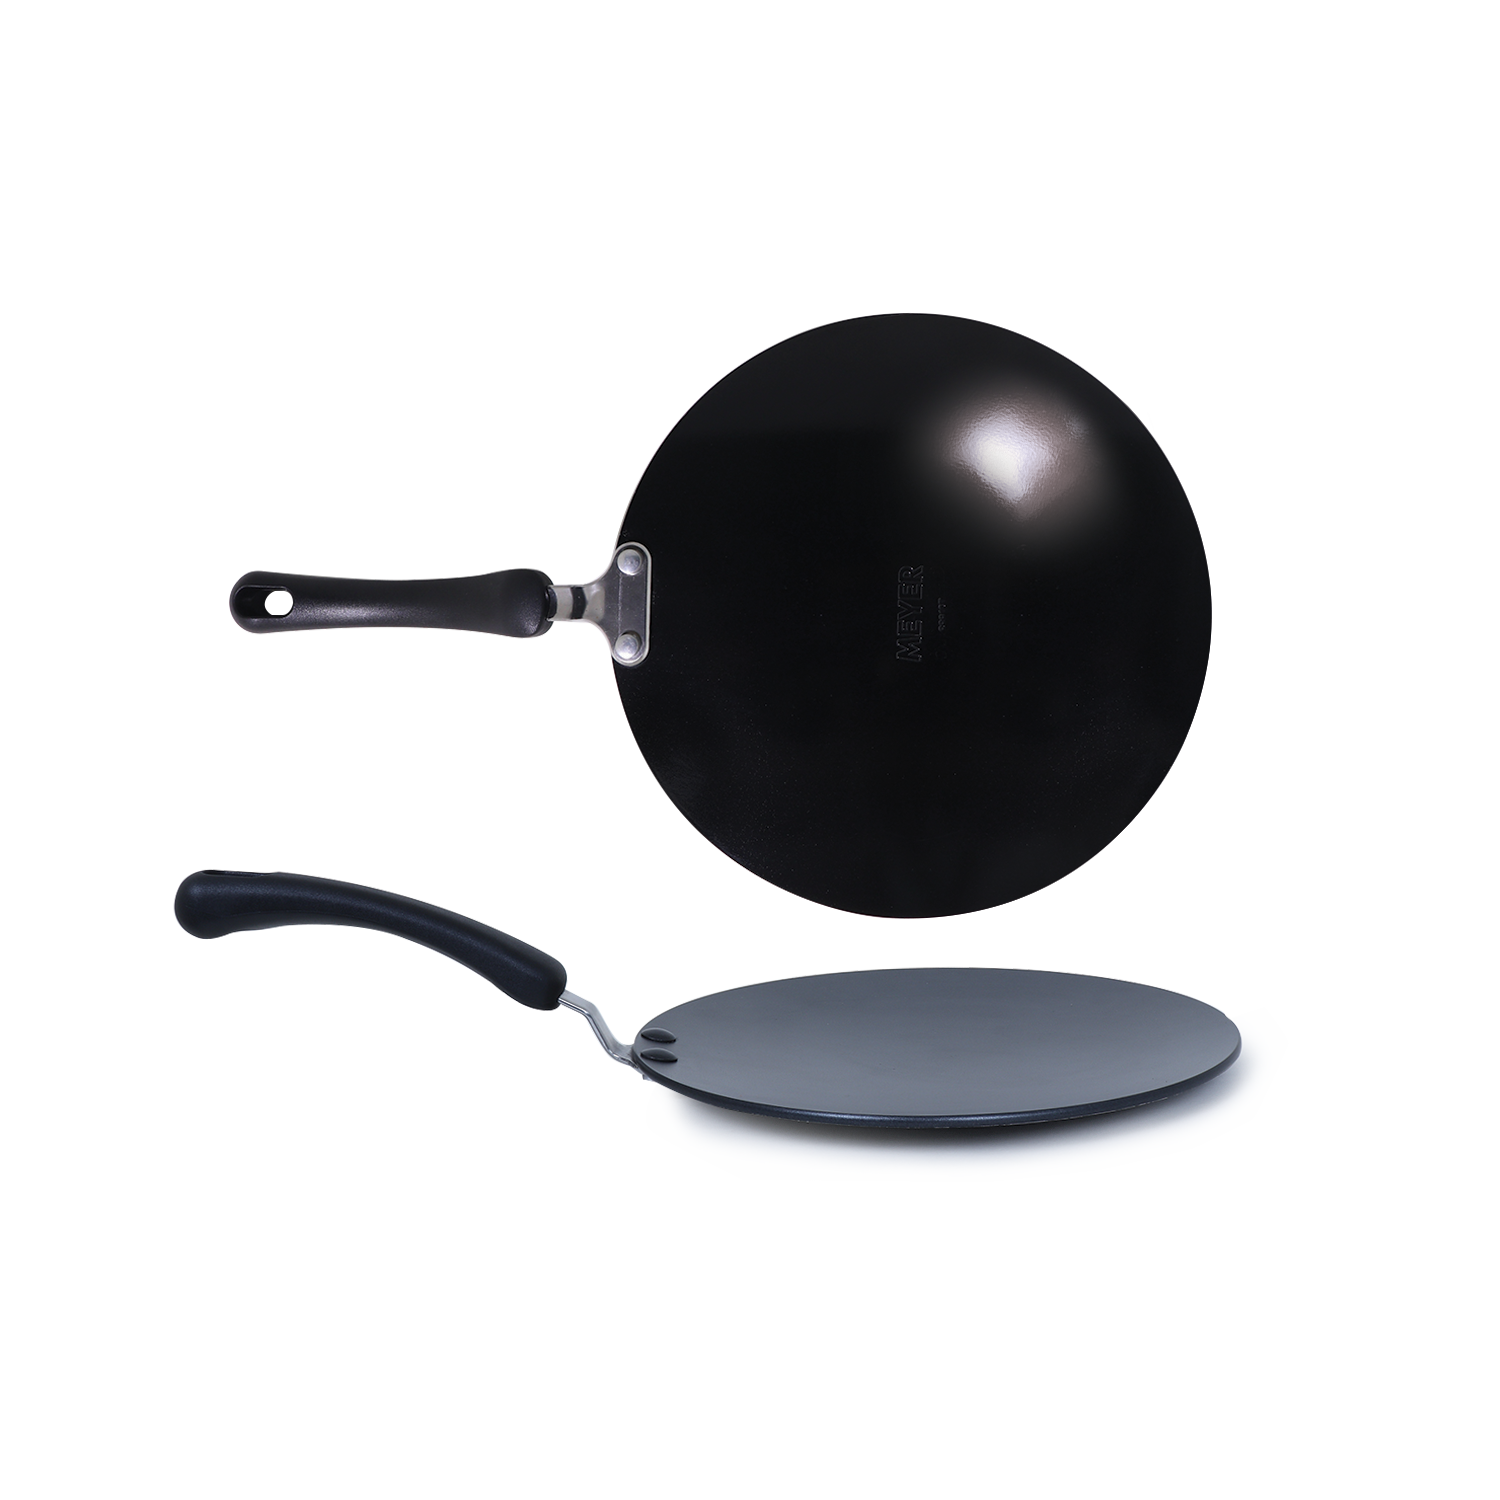 Meyer Non-Stick 2-Piece Tawa Set (Flat and Curved Tawa), Black - PotsandPans